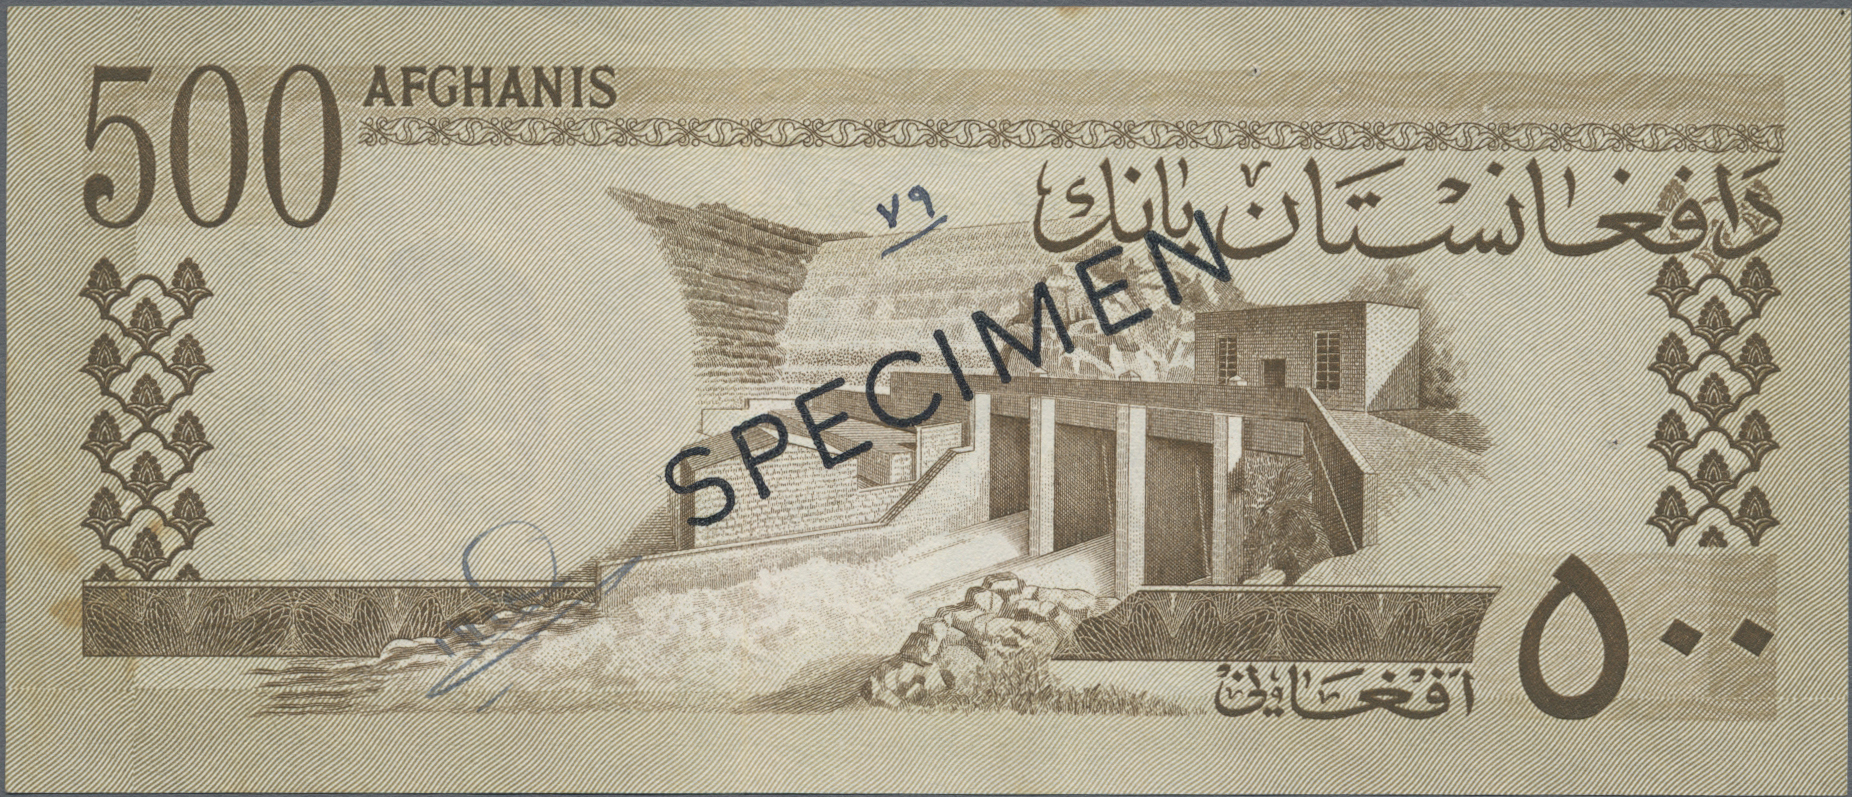 Lot 00007 - Afghanistan | Banknoten  -  Auktionshaus Christoph Gärtner GmbH & Co. KG Sale #48 The Banknotes